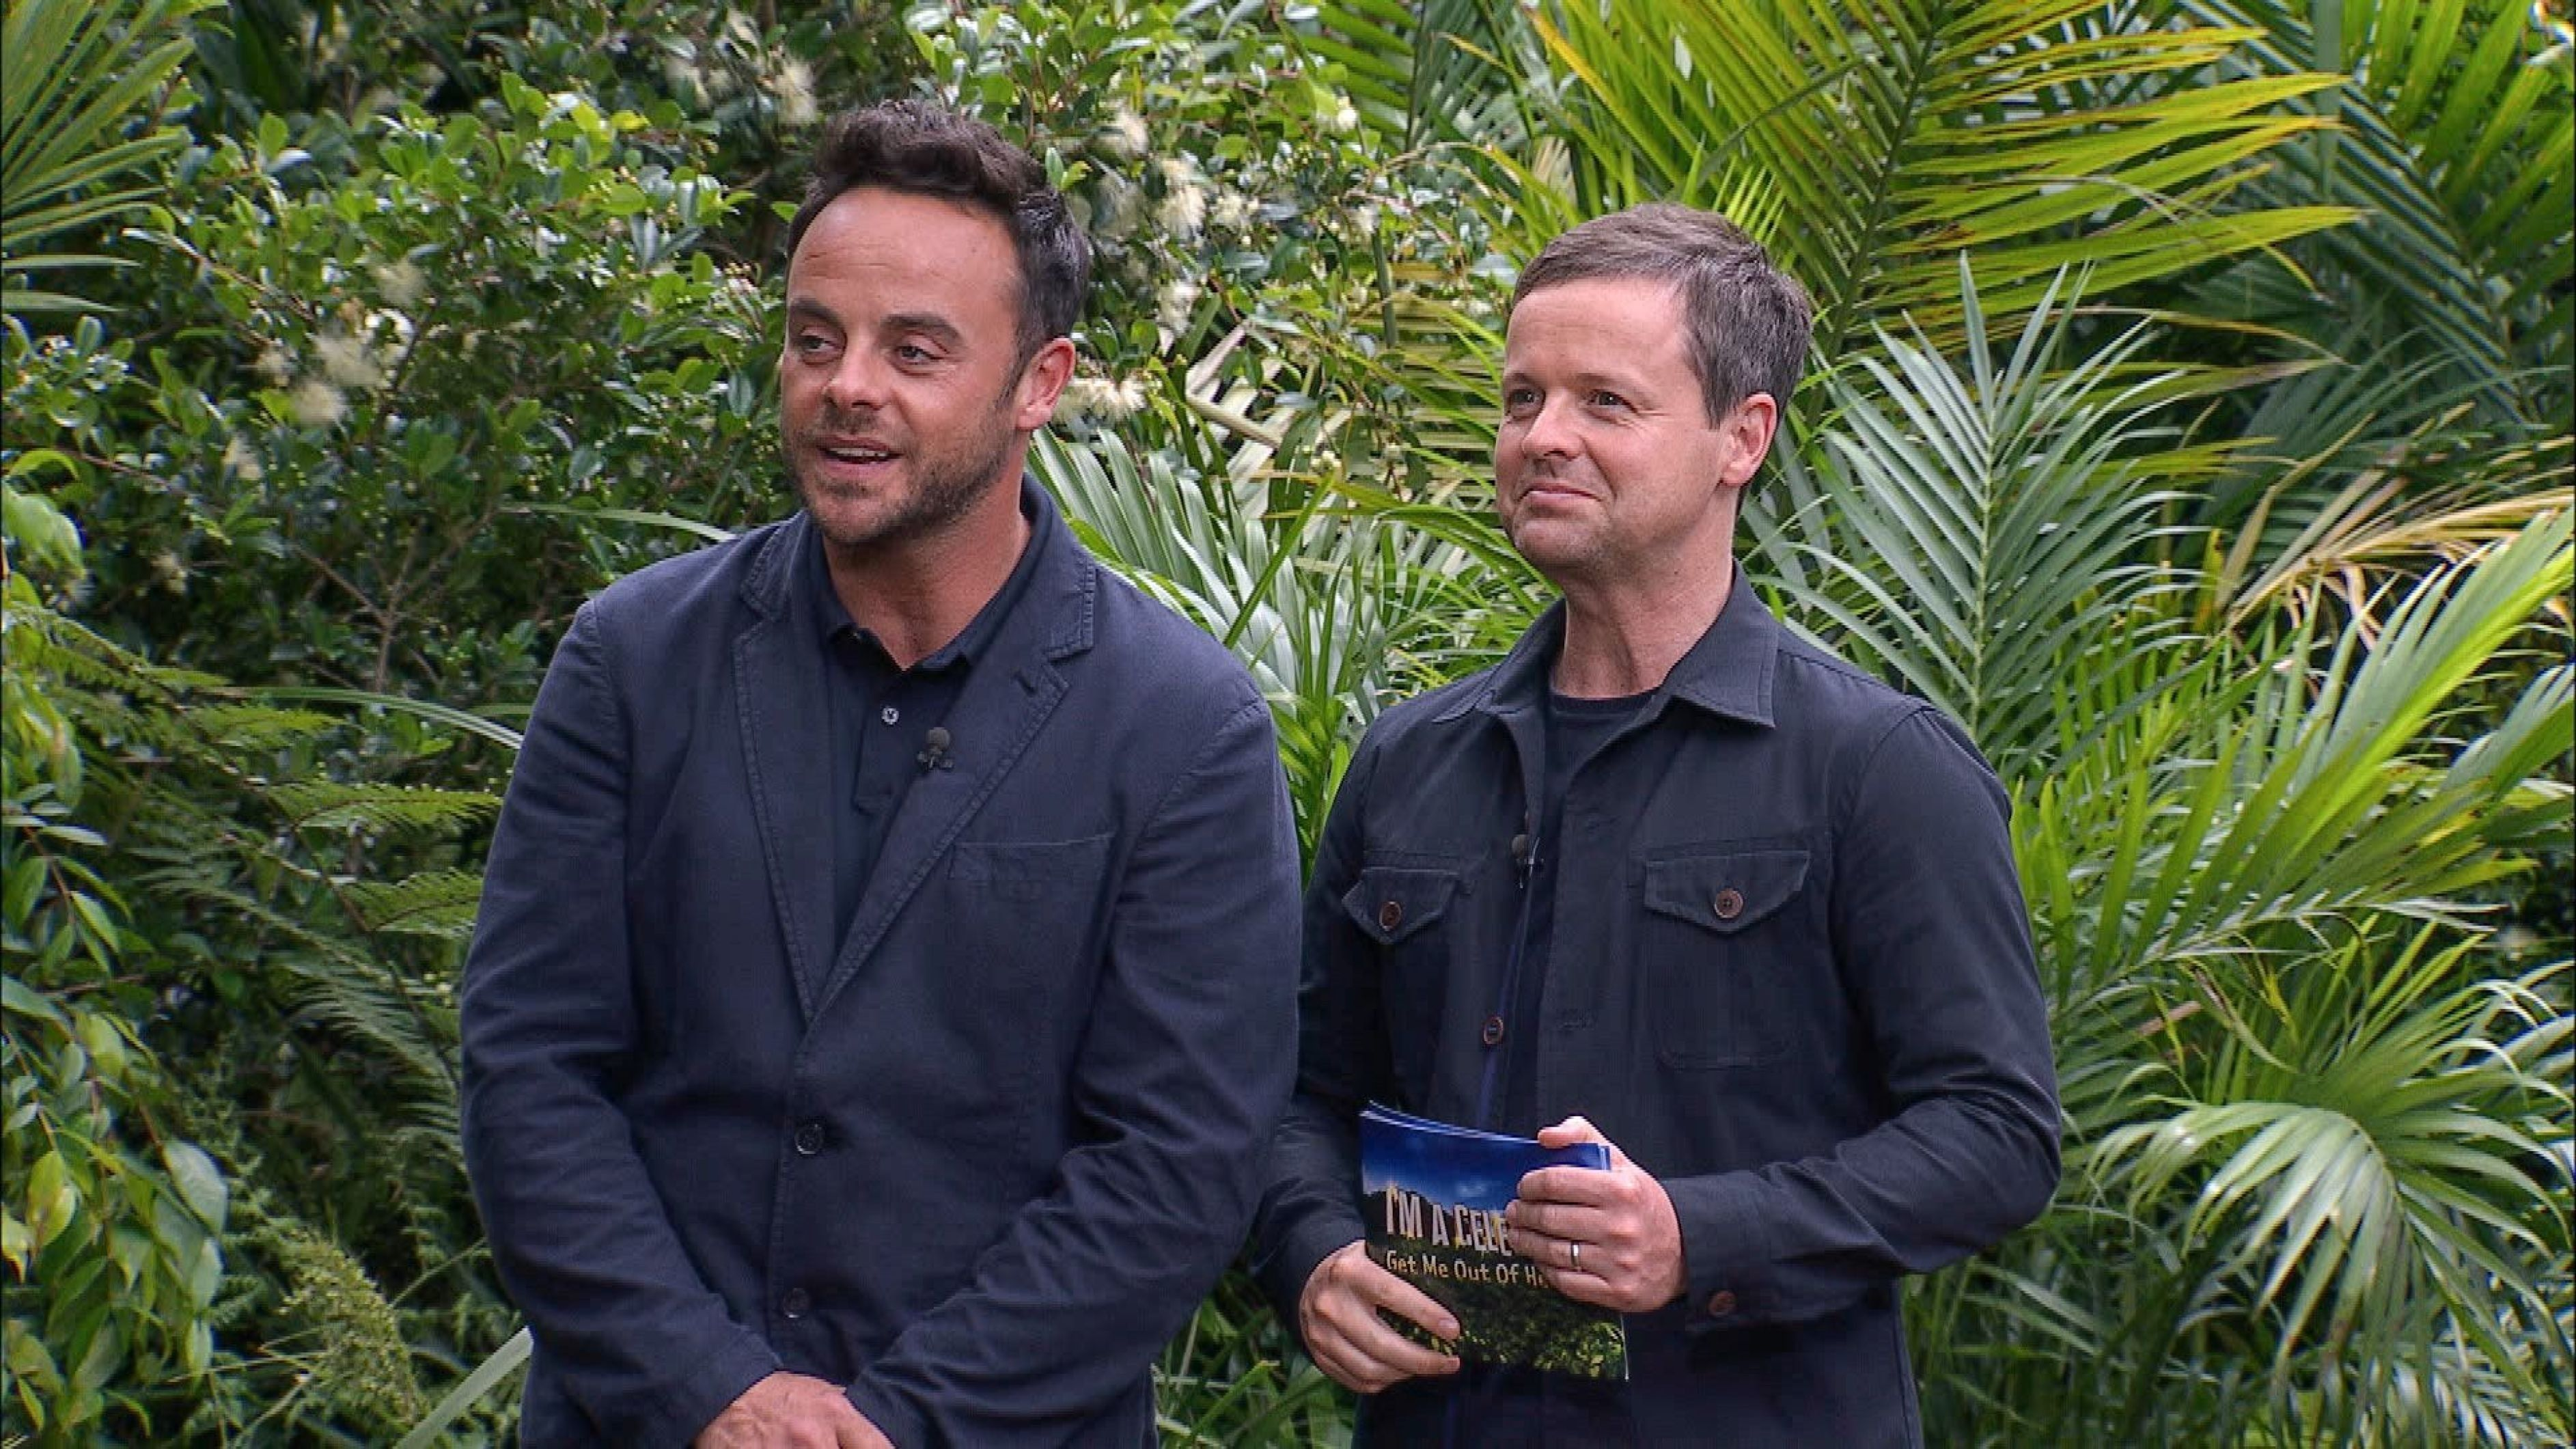 Declan Donnelly Will Get A New Co-Host On 'I'm A Celebrity', ITV Boss Confirms